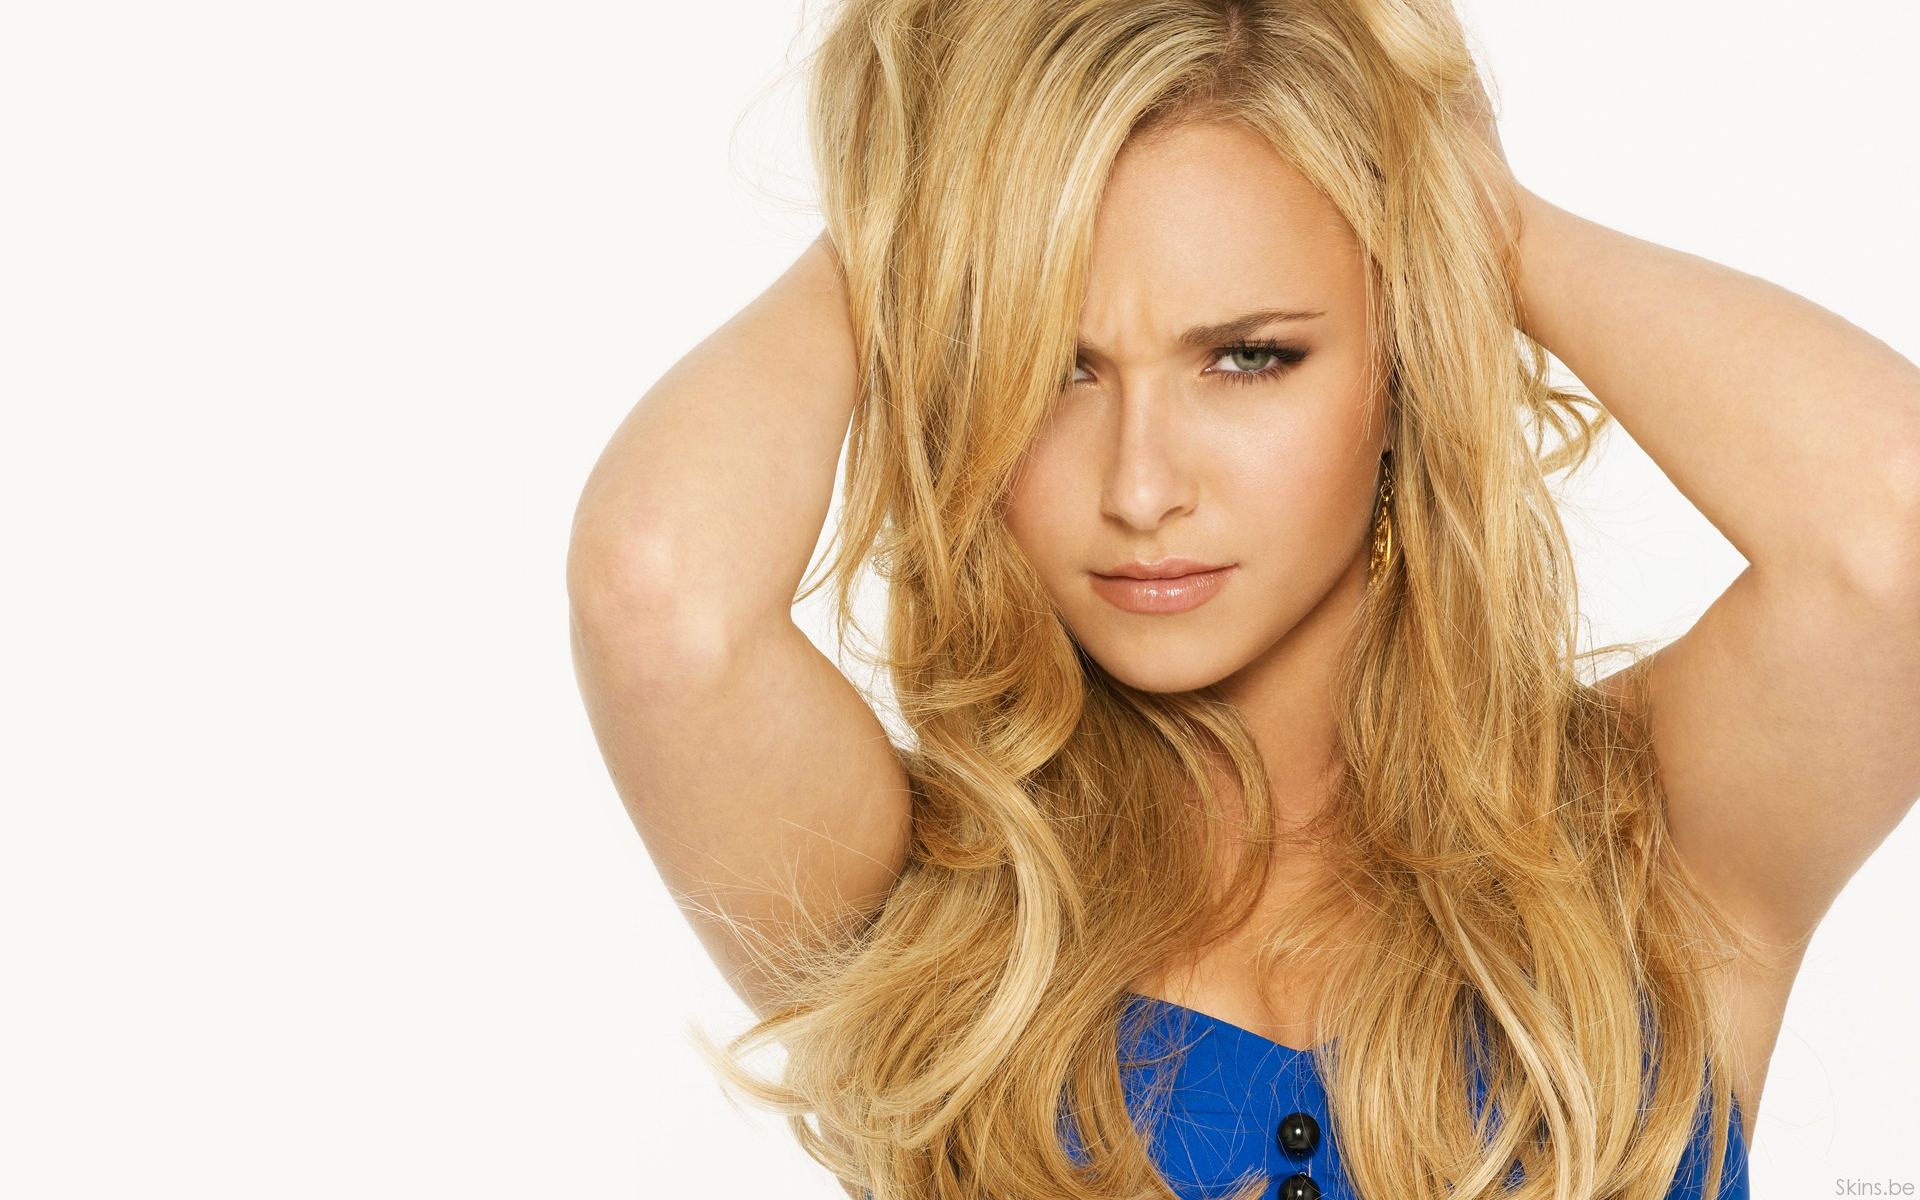 wallpaper4me.com/images/wallpapers/hayden panettiere be Sexy-713604.jpeg